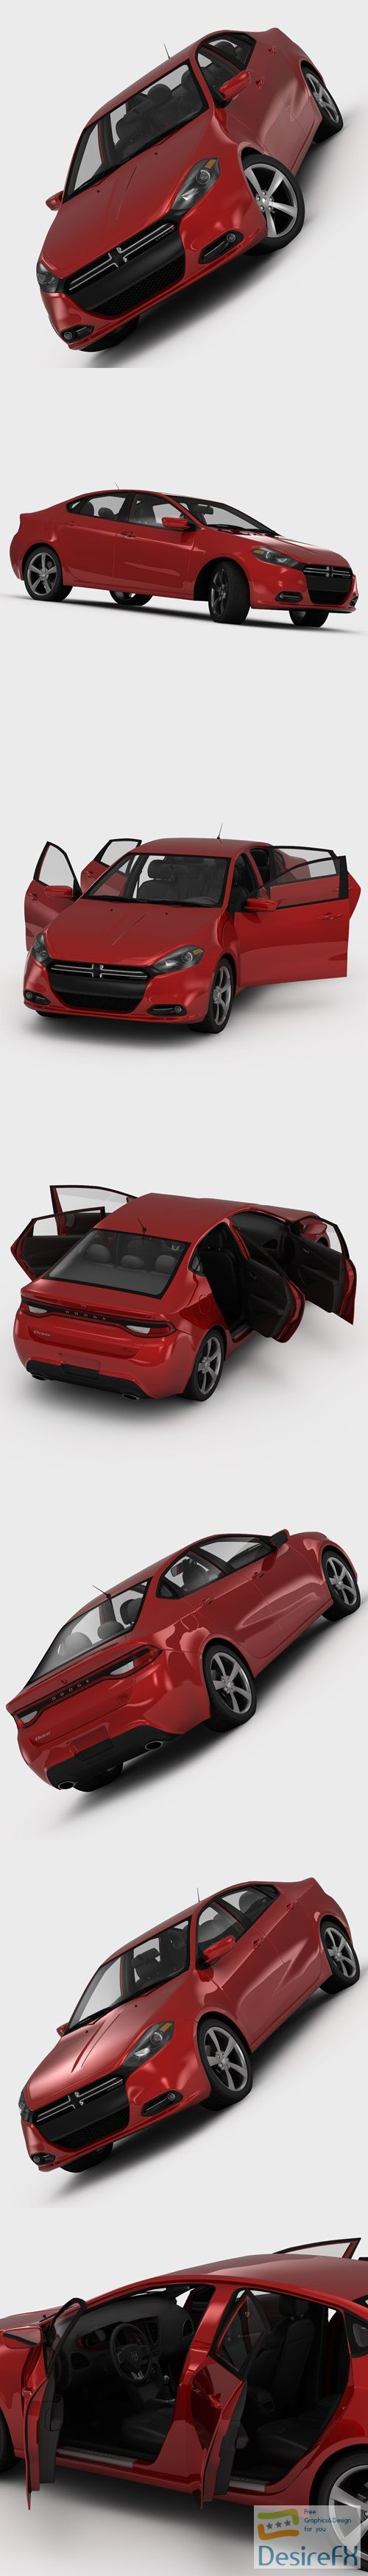 3d-models - Dodge Dart RT 2013 3D Model